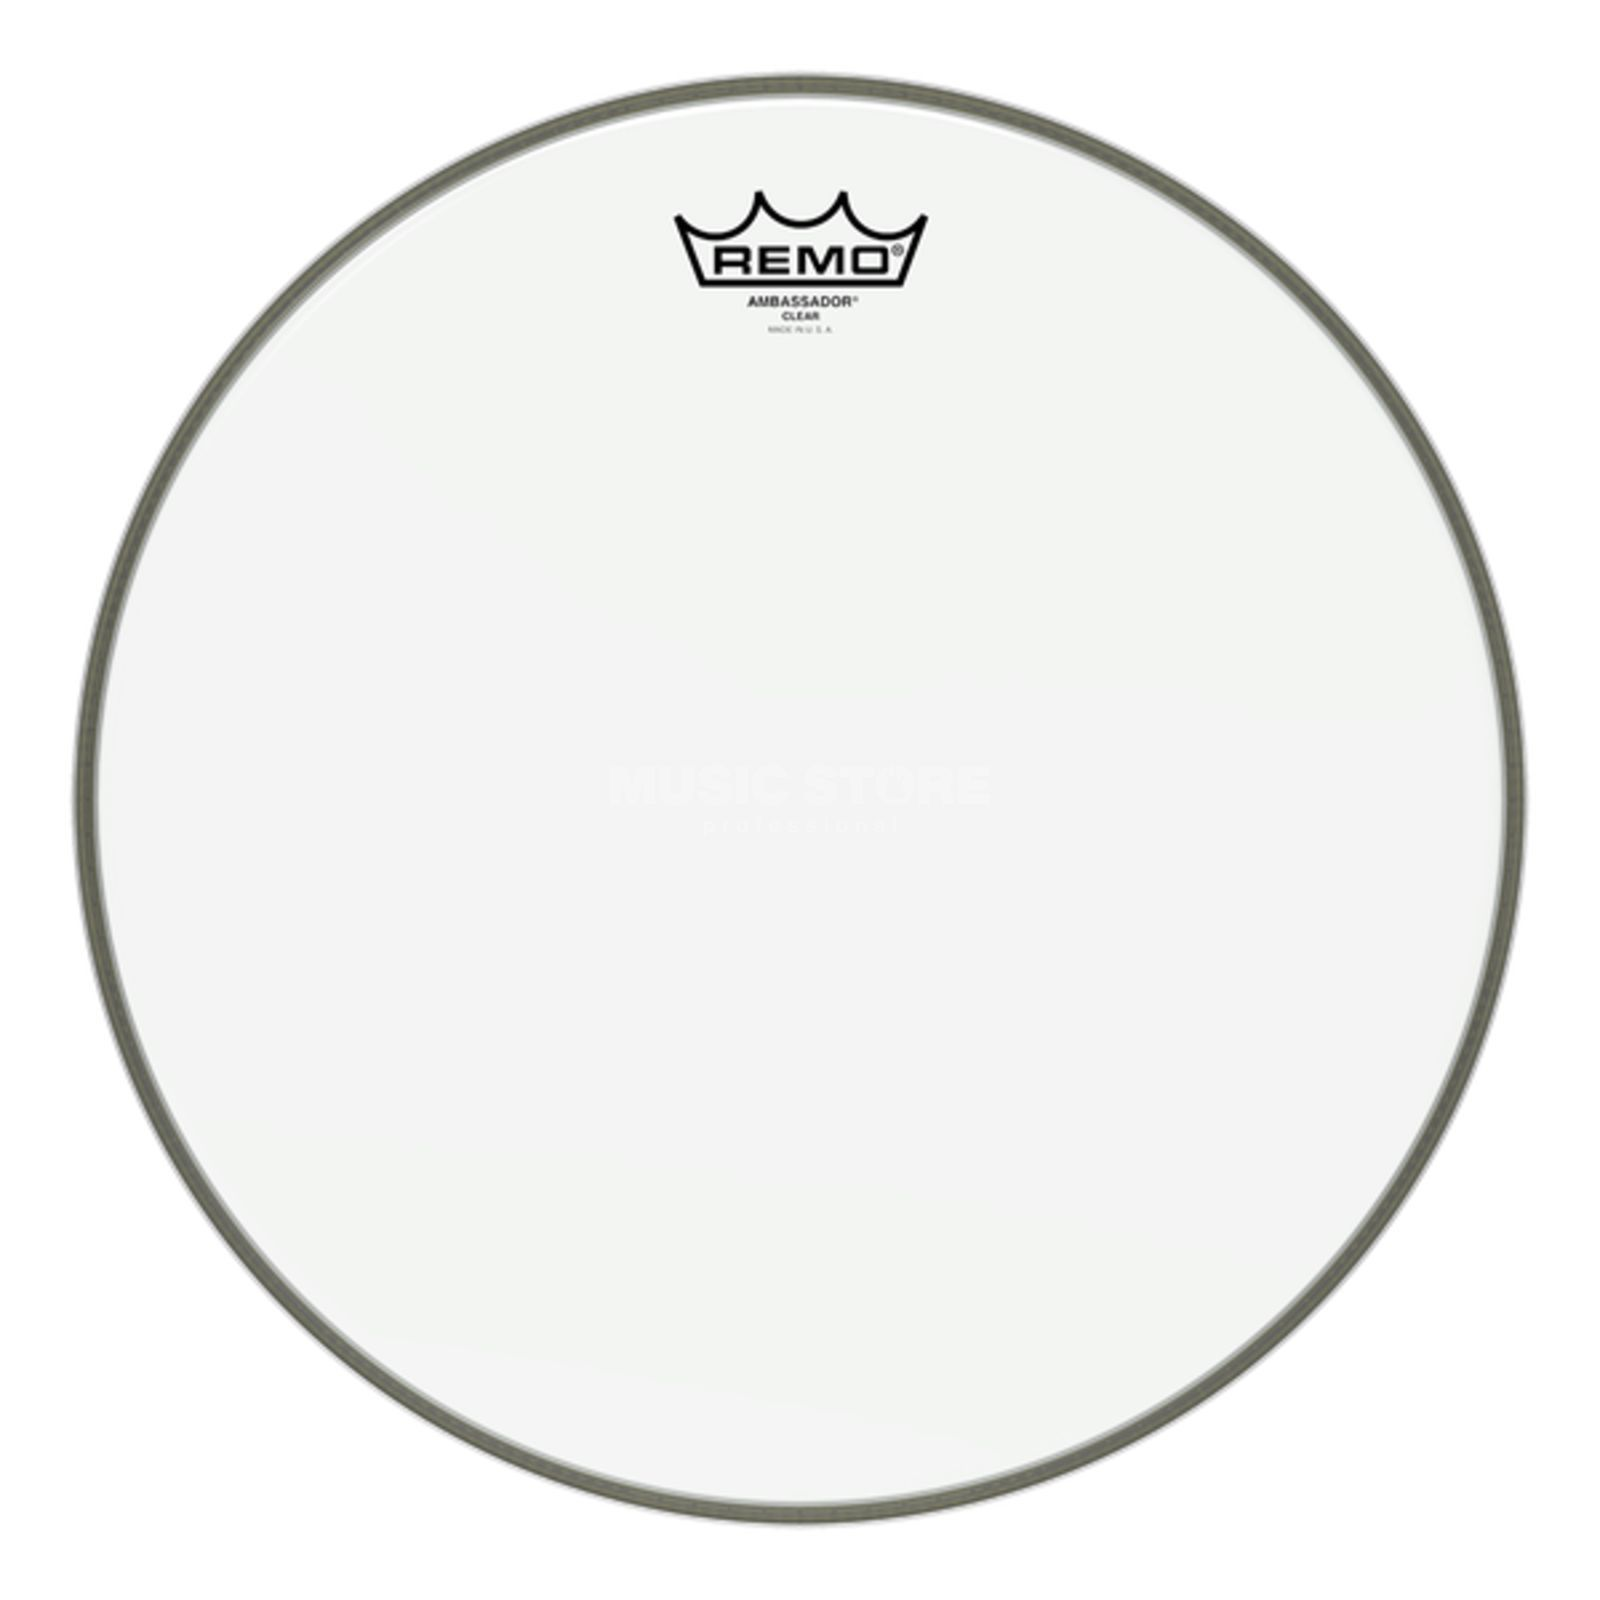 "Remo Ambasador Clear 20"", basDrum Batter/Reso Productafbeelding"